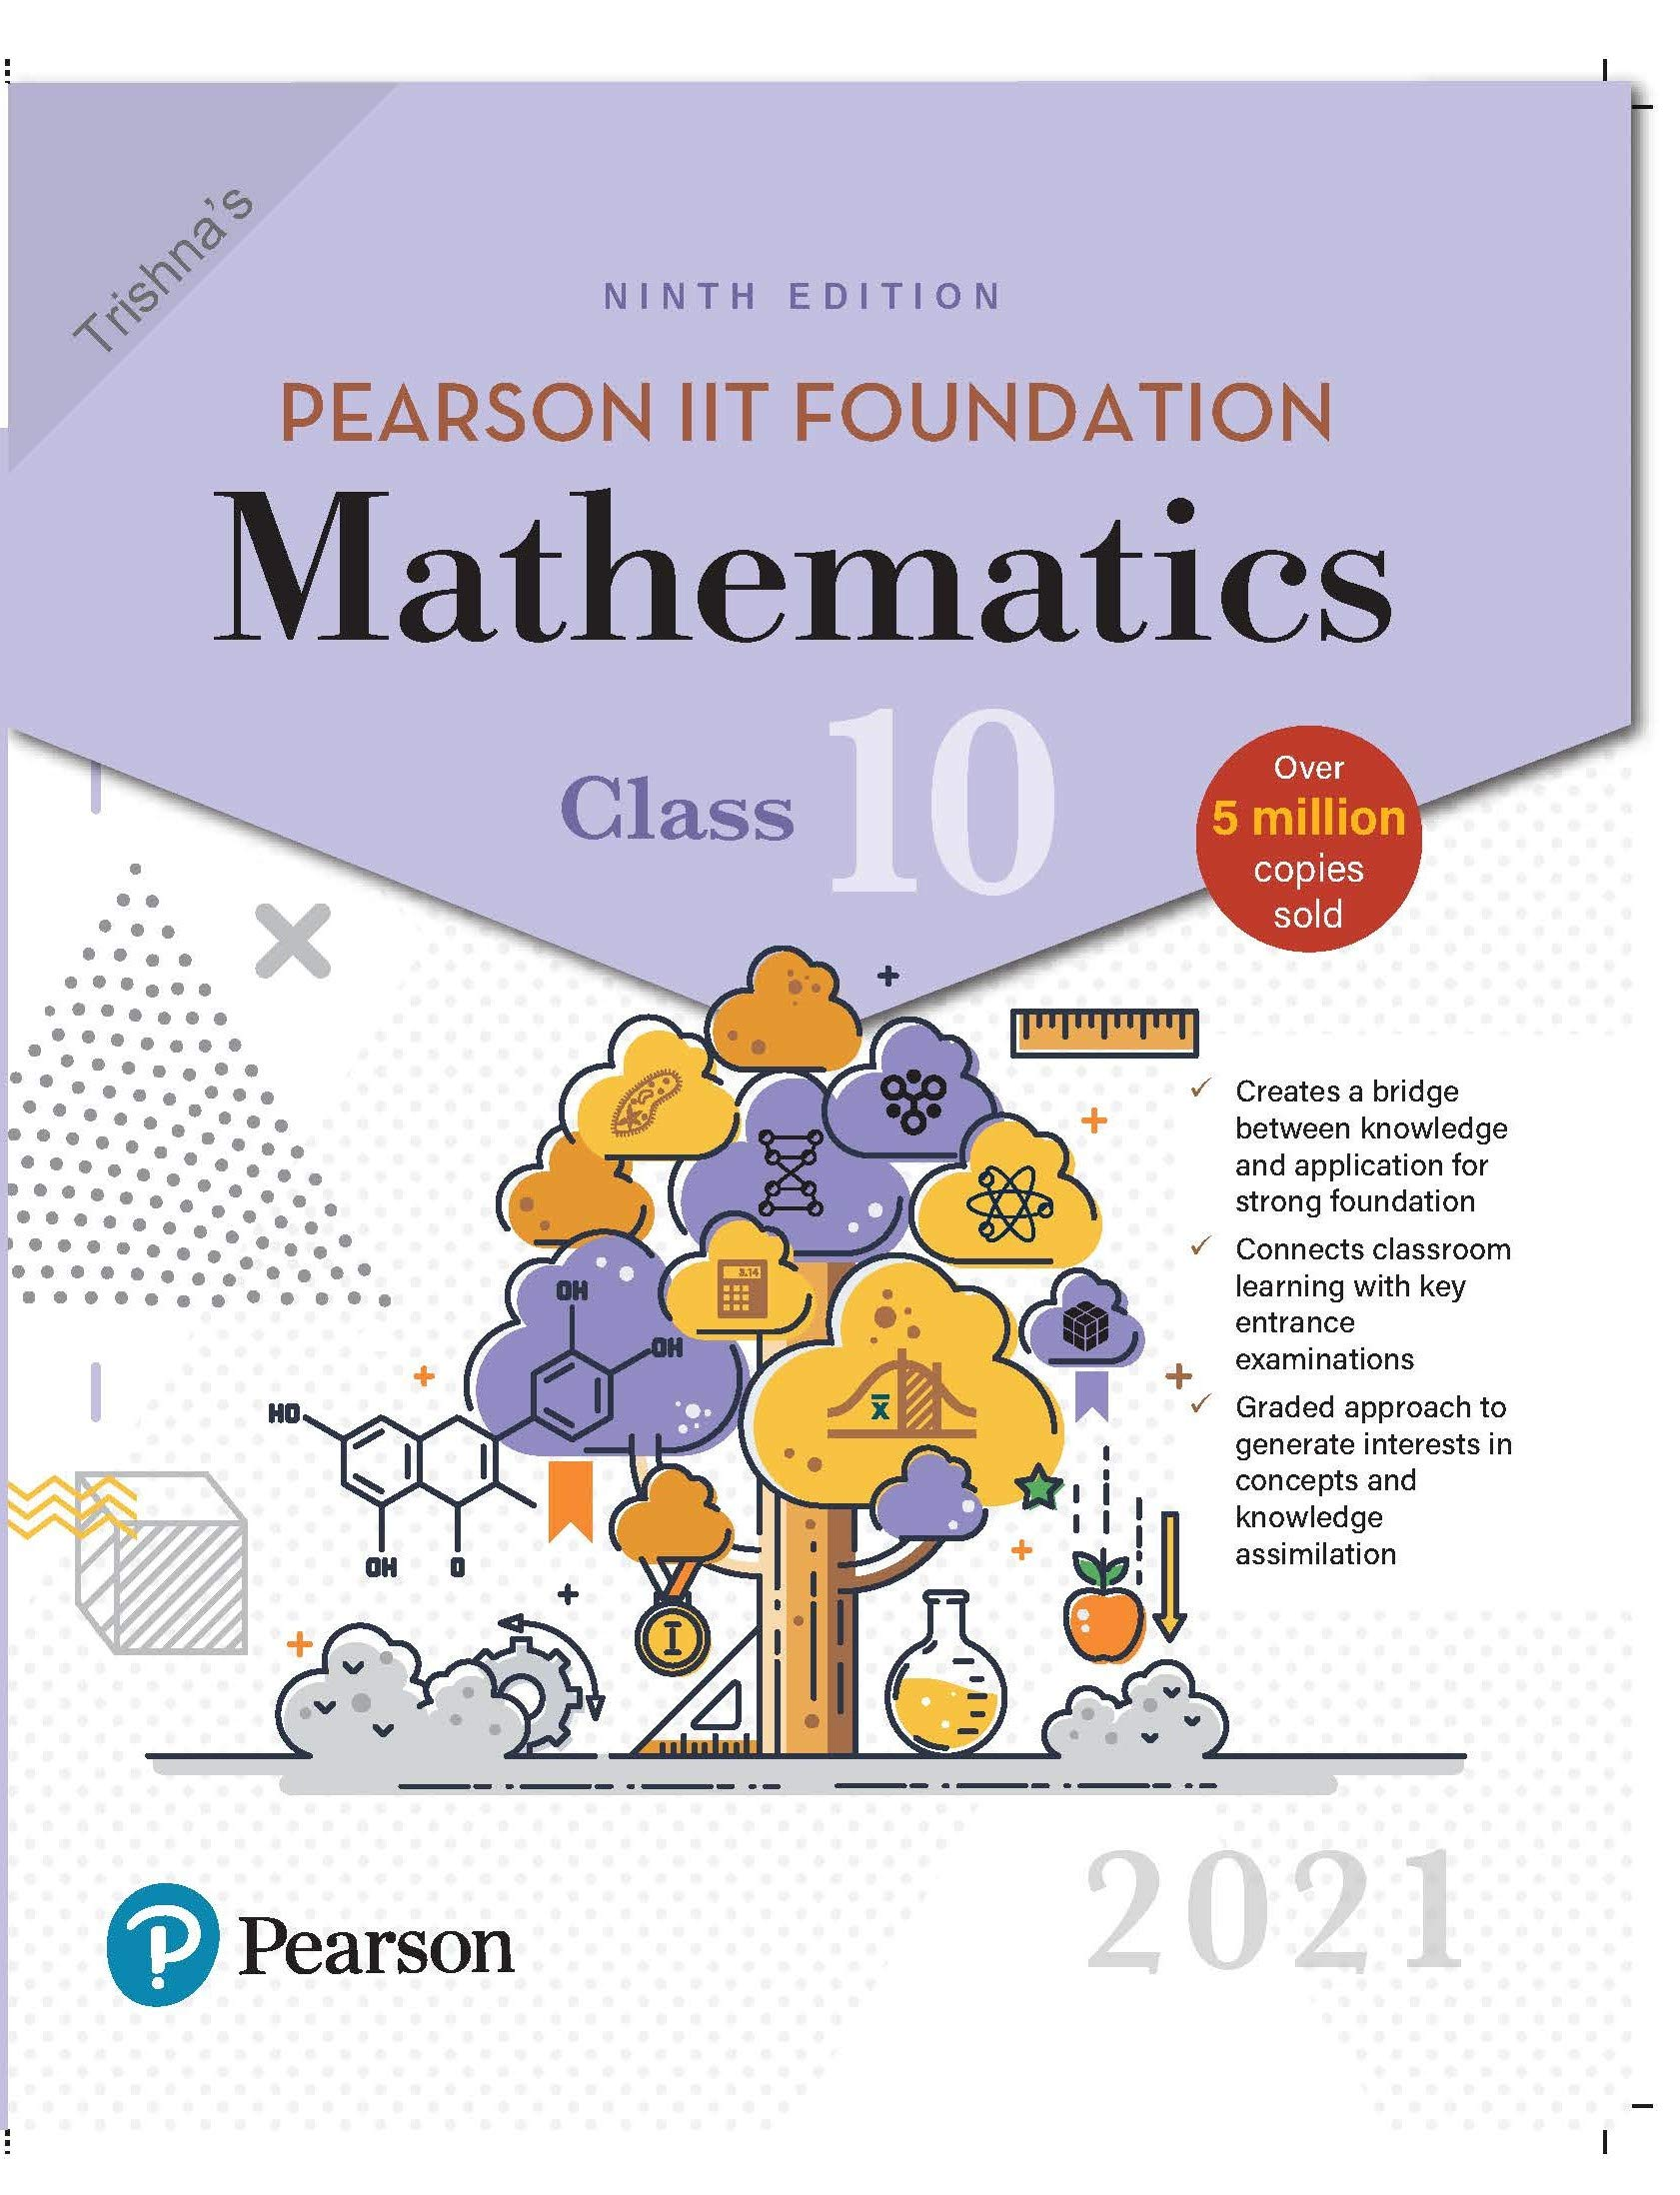 Pearson IIT Foundation Mathematics   Class 10  2021 Edition  By Pearson